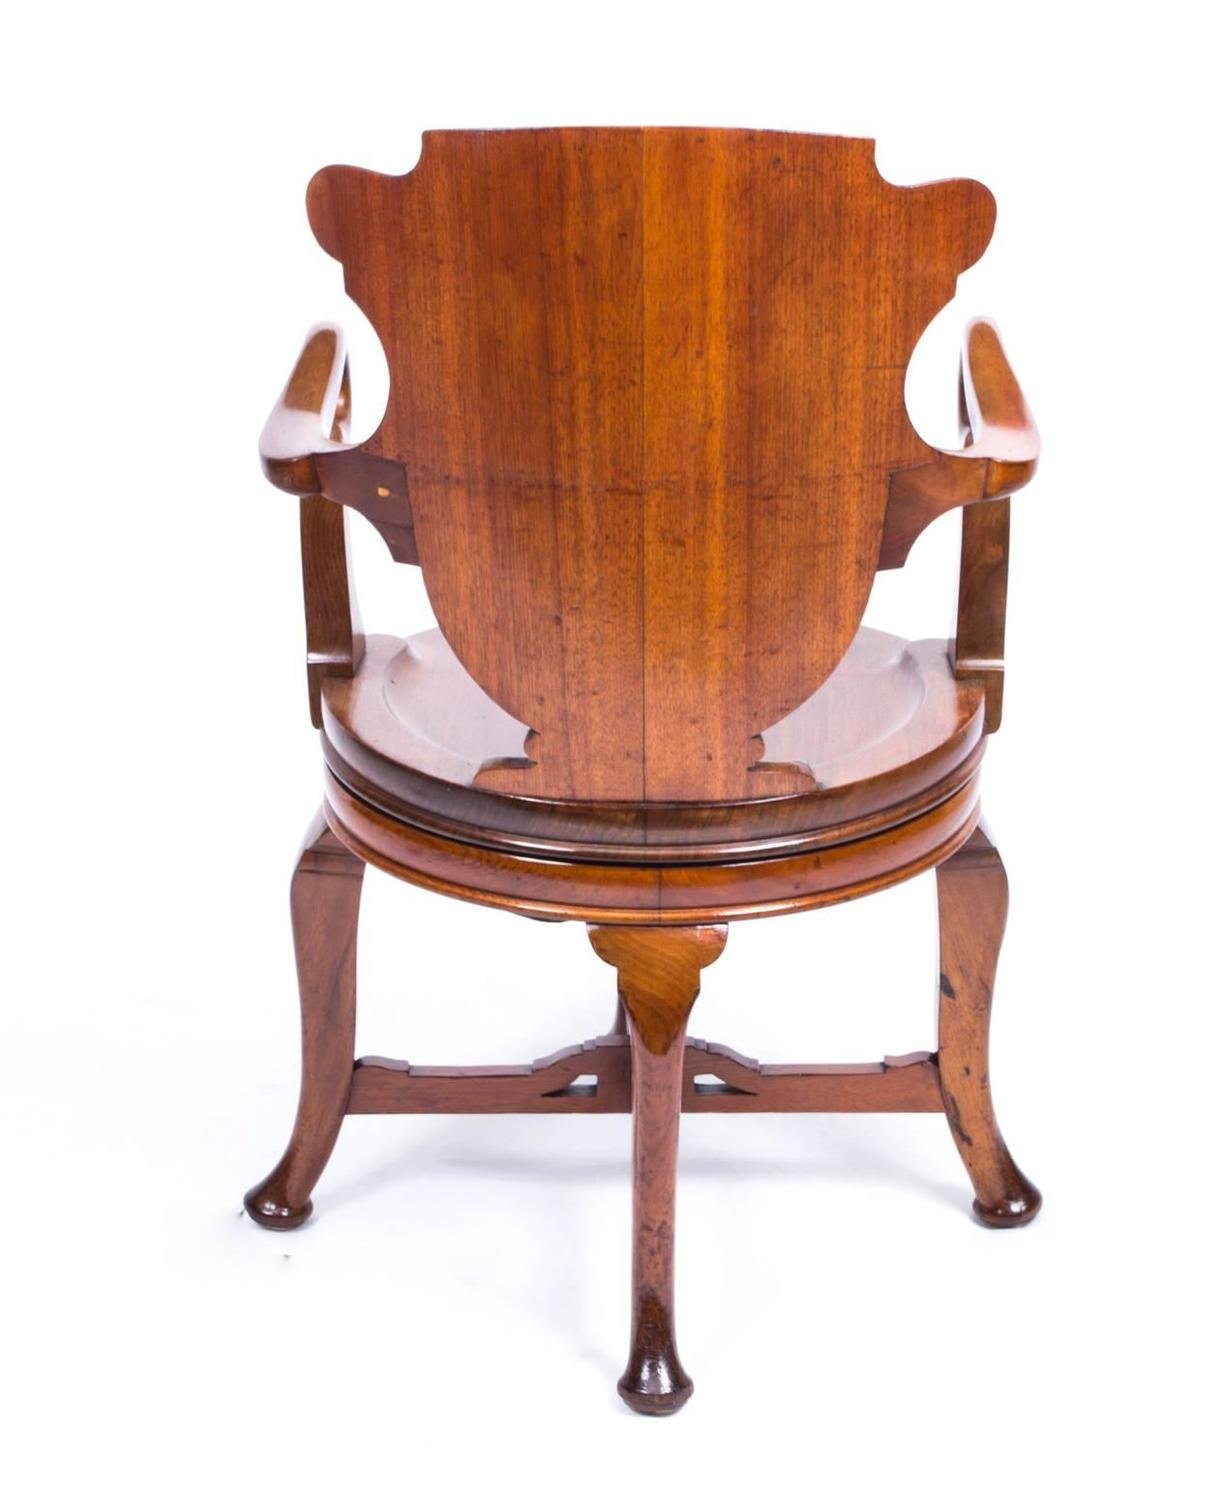 revolving desk chair diy removable covers antique edwardian walnut circa 1880